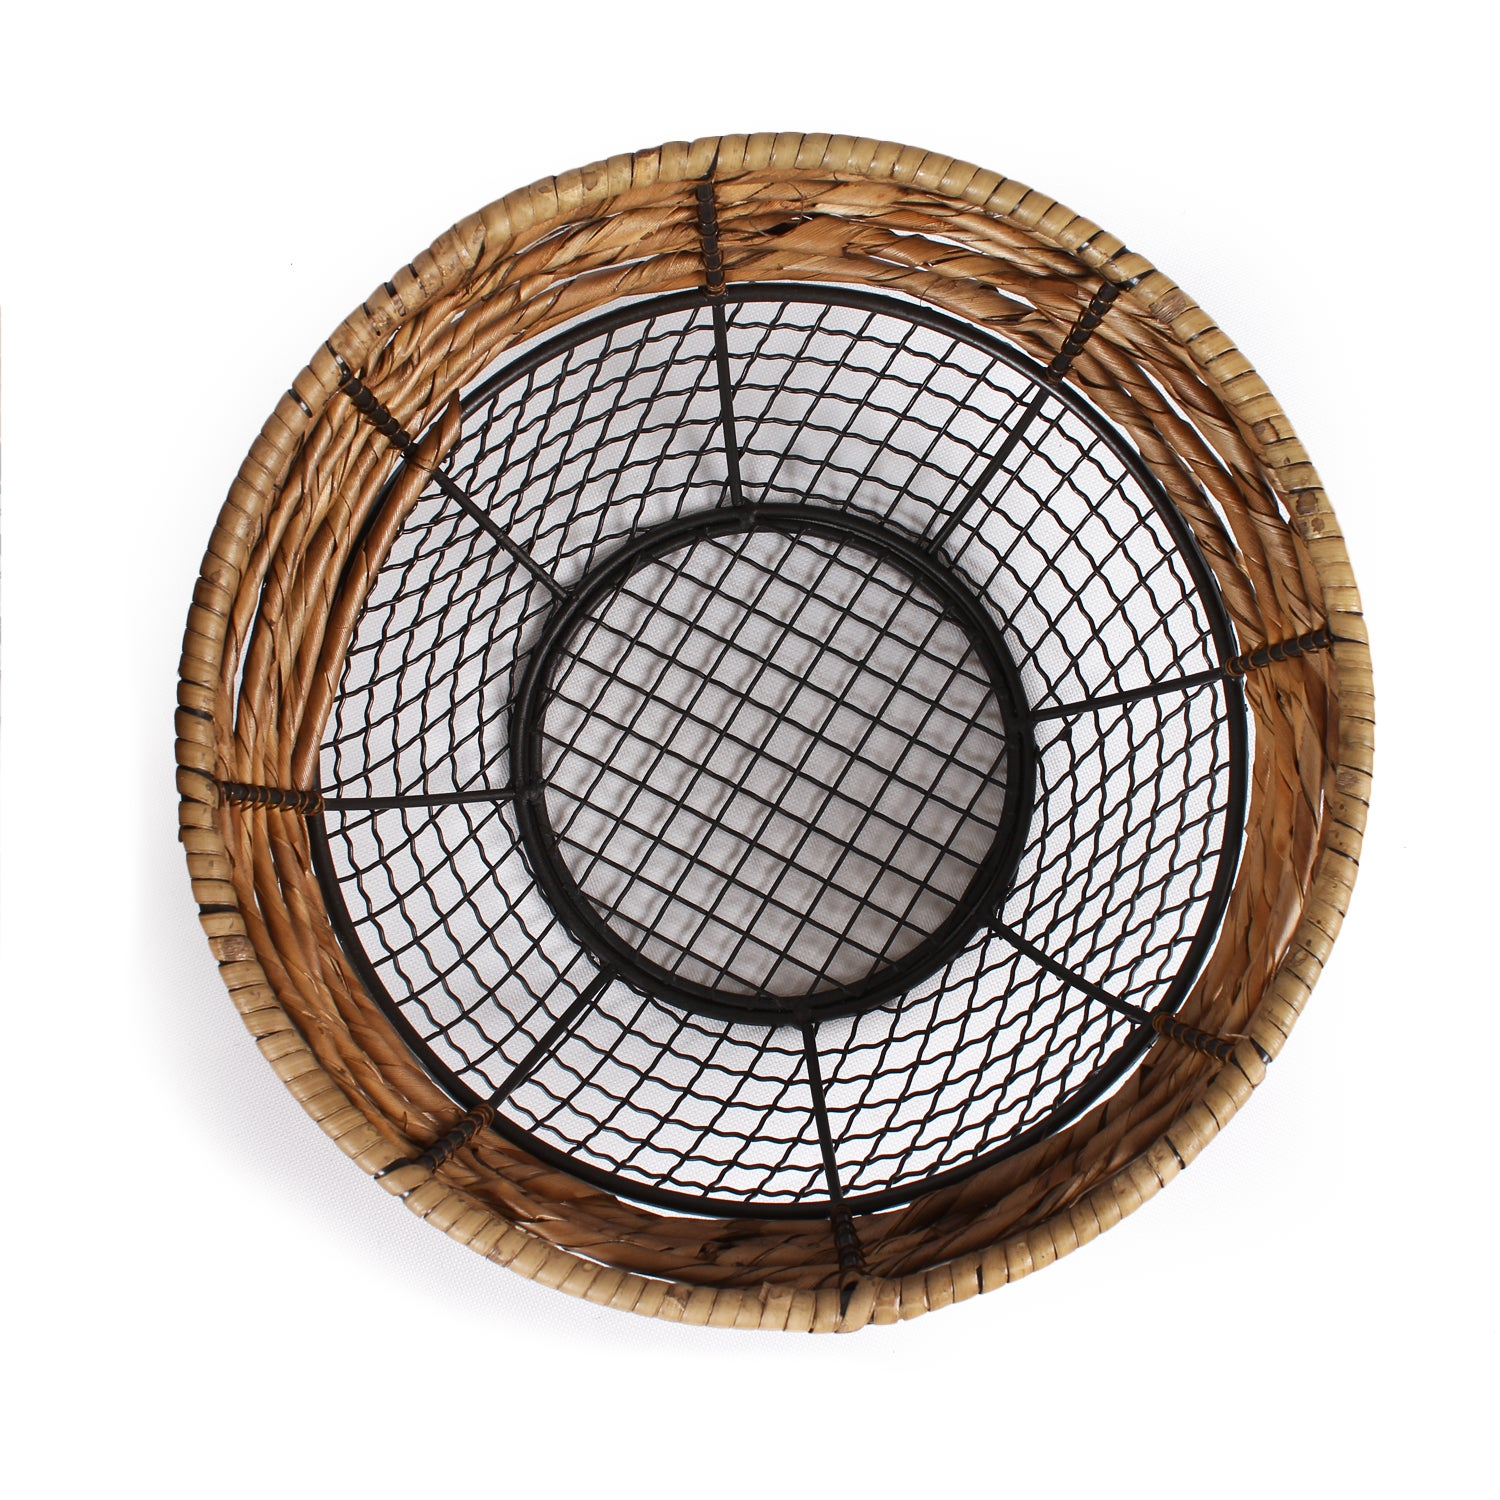 Shop Adeco Black Iron Wire Round Wide-Mouth Basket with Seagrass ...